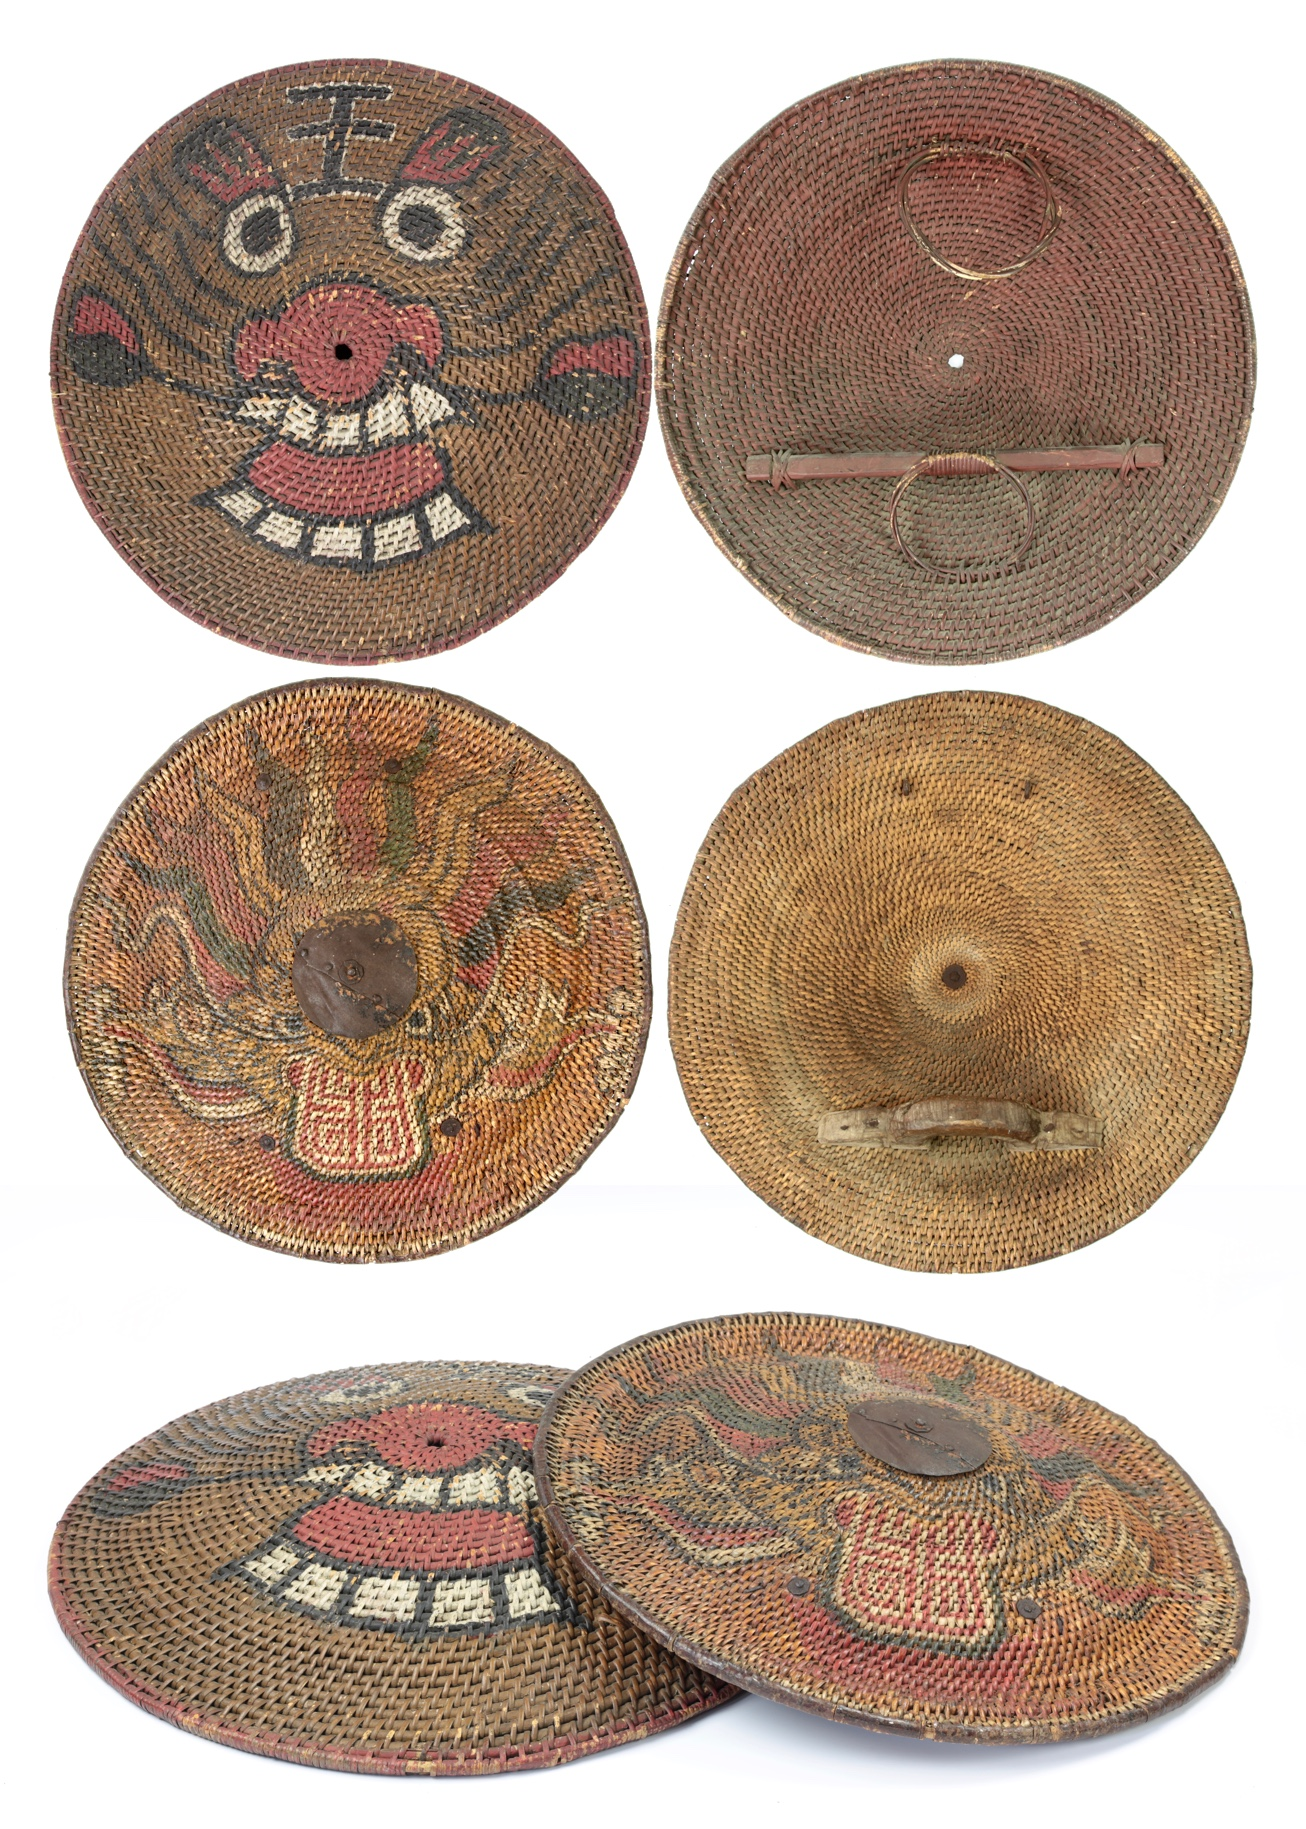 A comparison between Chinese and Vietnamese rattan shields